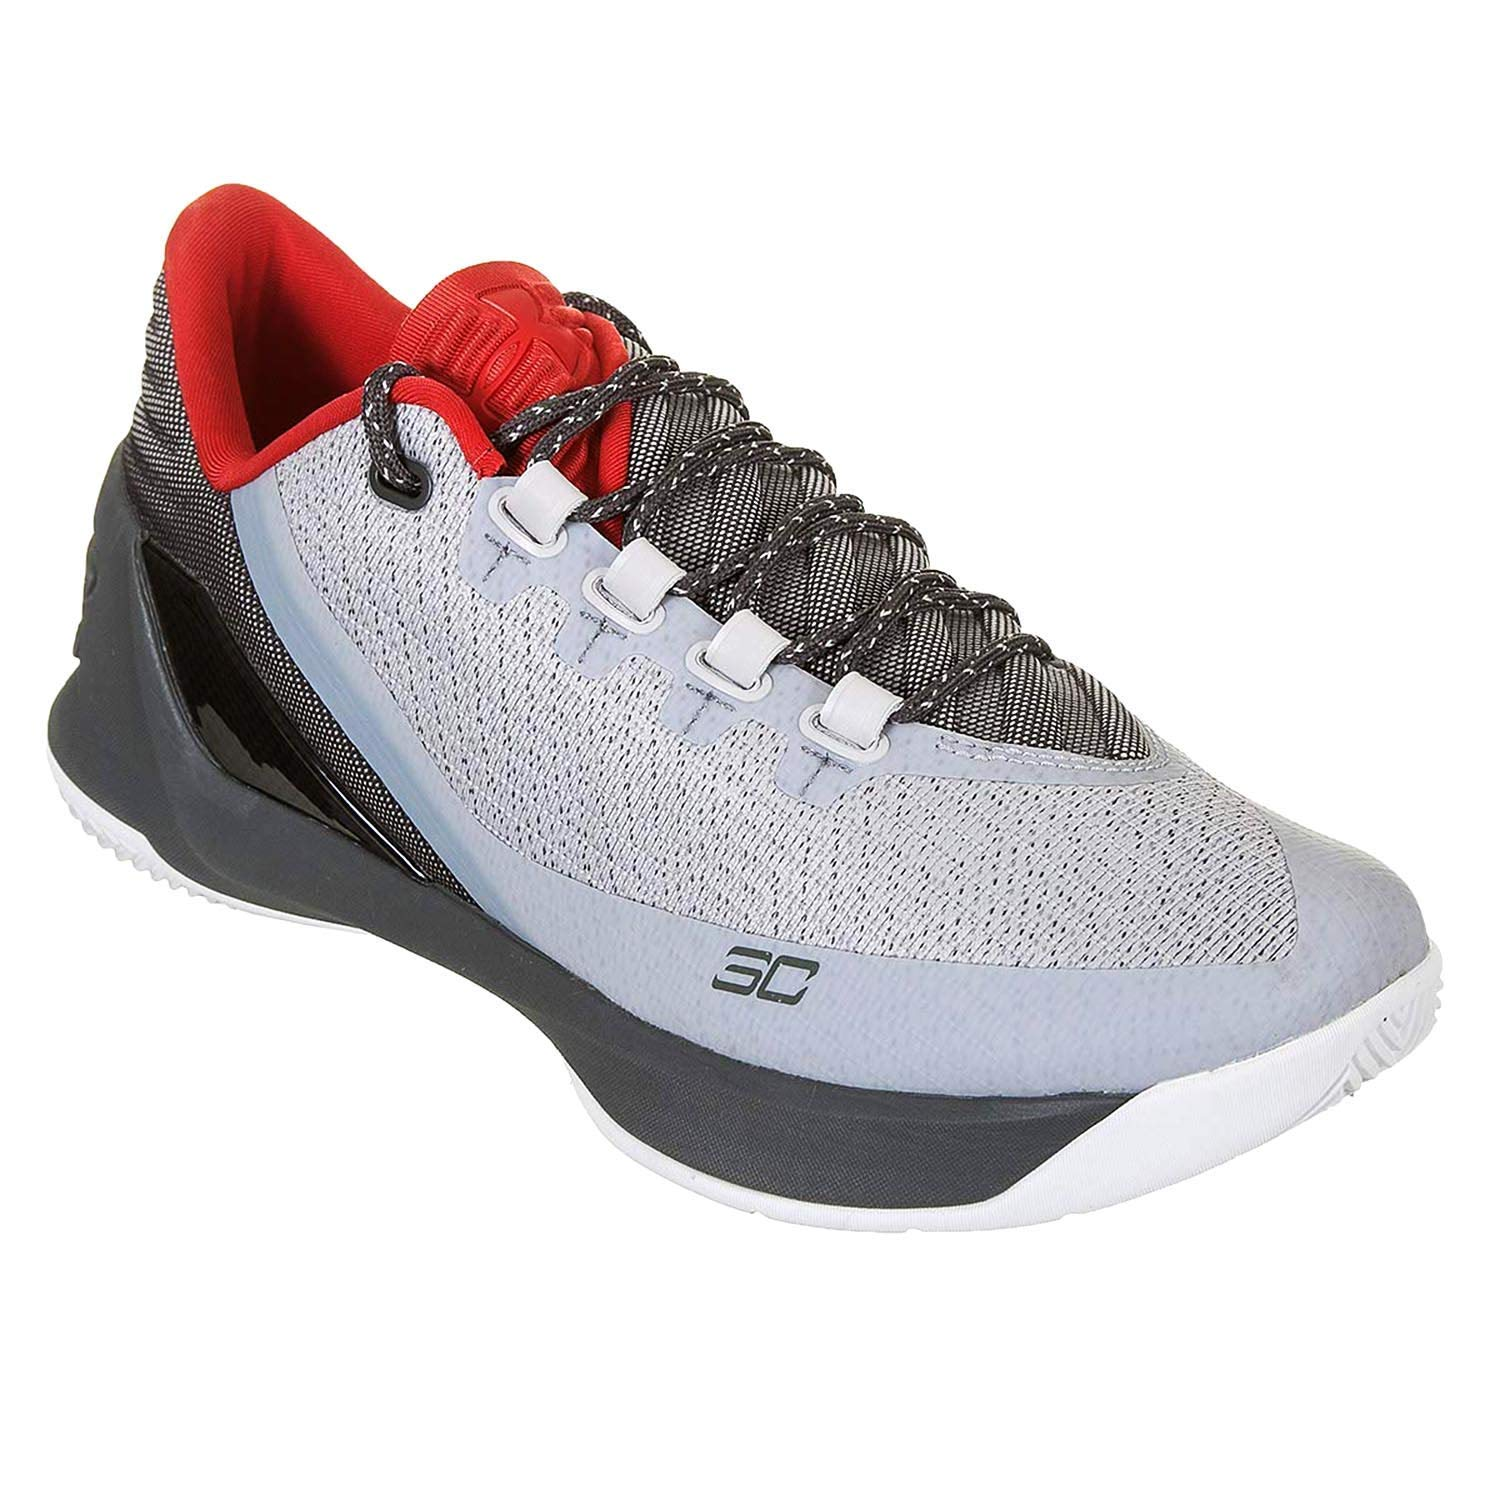 timeless design a03cd bbe09 Amazon.com | Under Armour Boys Curry 3 Low Basketball Shoes ...